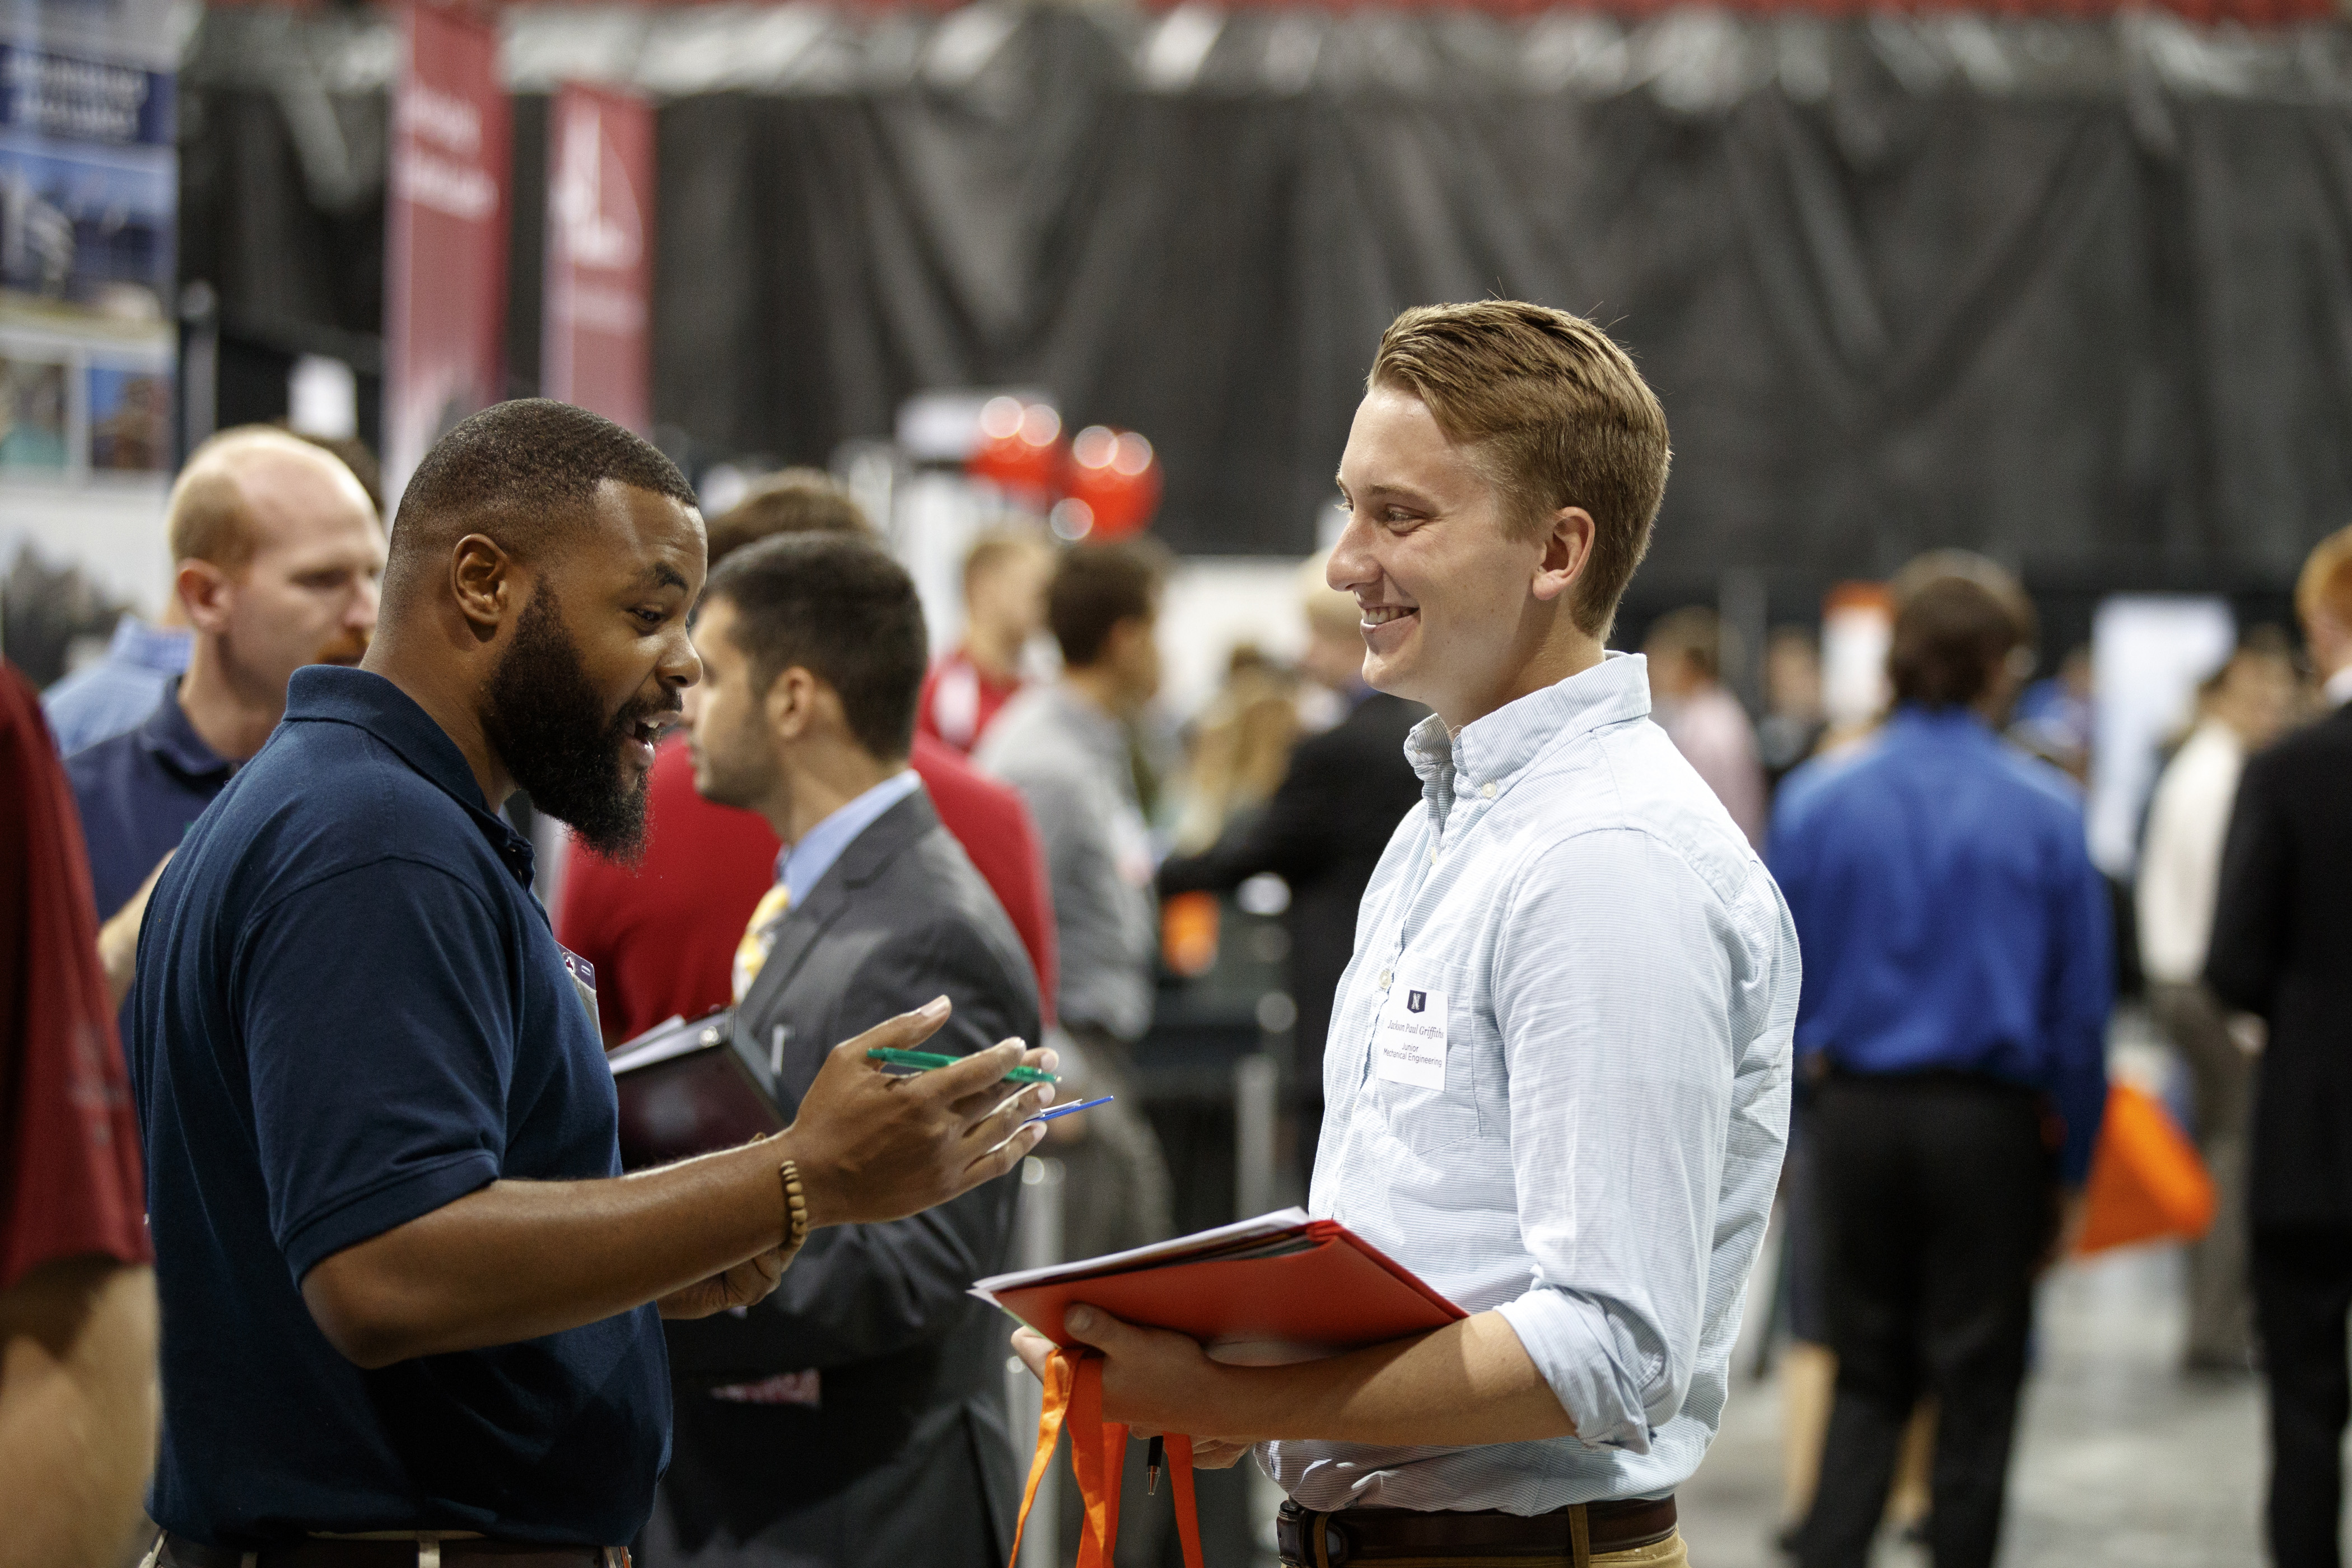 Encourage your student to attend career fairs to explore internship and job opportunities.